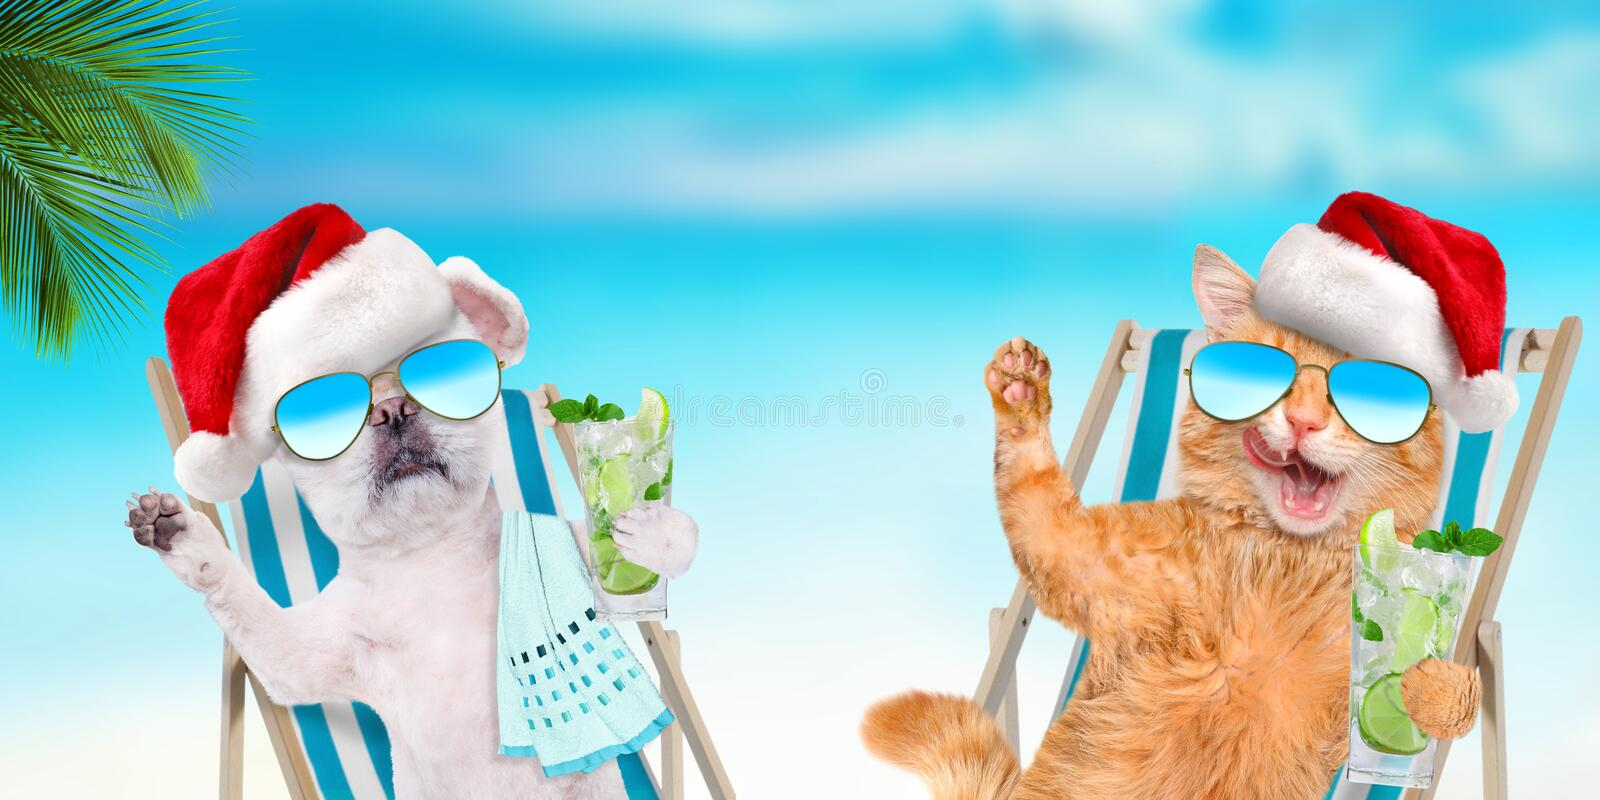 Cat and dog relaxing sitting on deckchair with cocktail on the sea background. Christmas royalty free stock photo